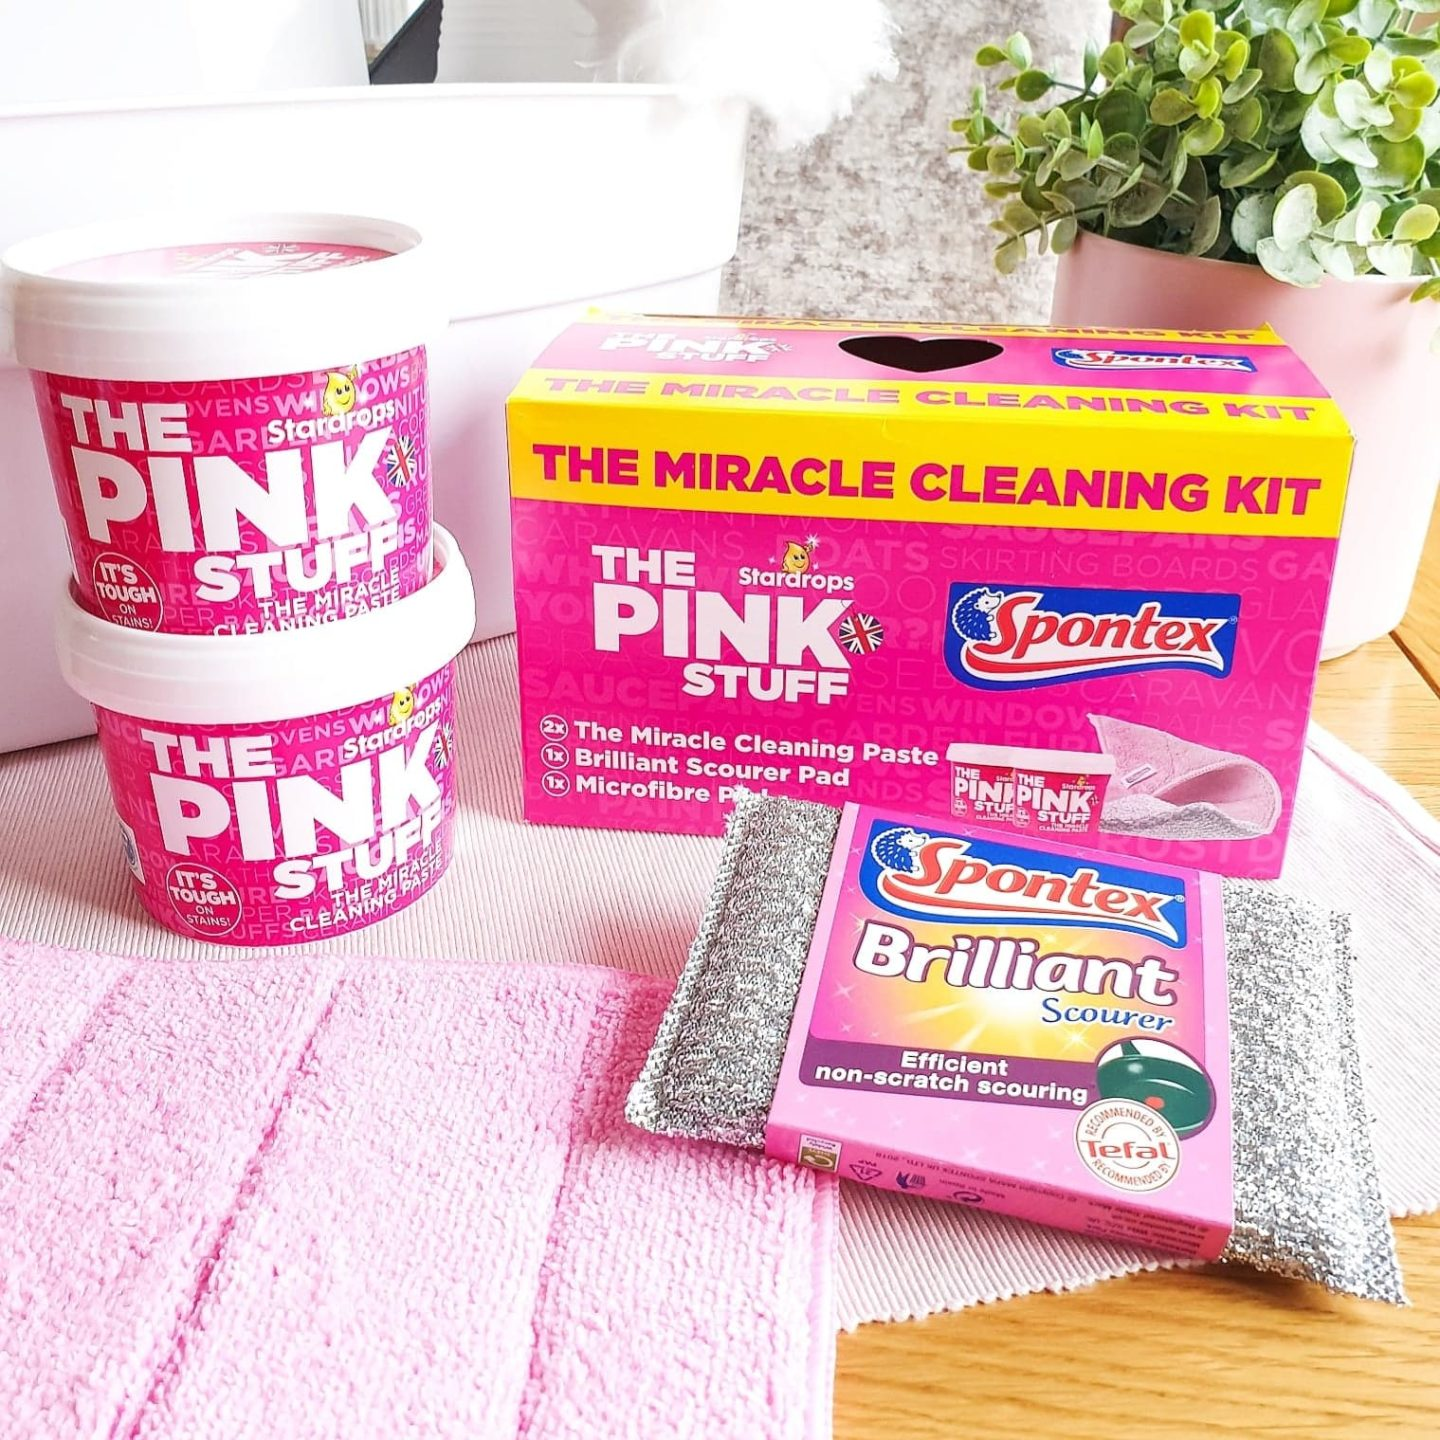 20 Uses for The Pink Stuff Miracle Cleaning Paste from Stardrops